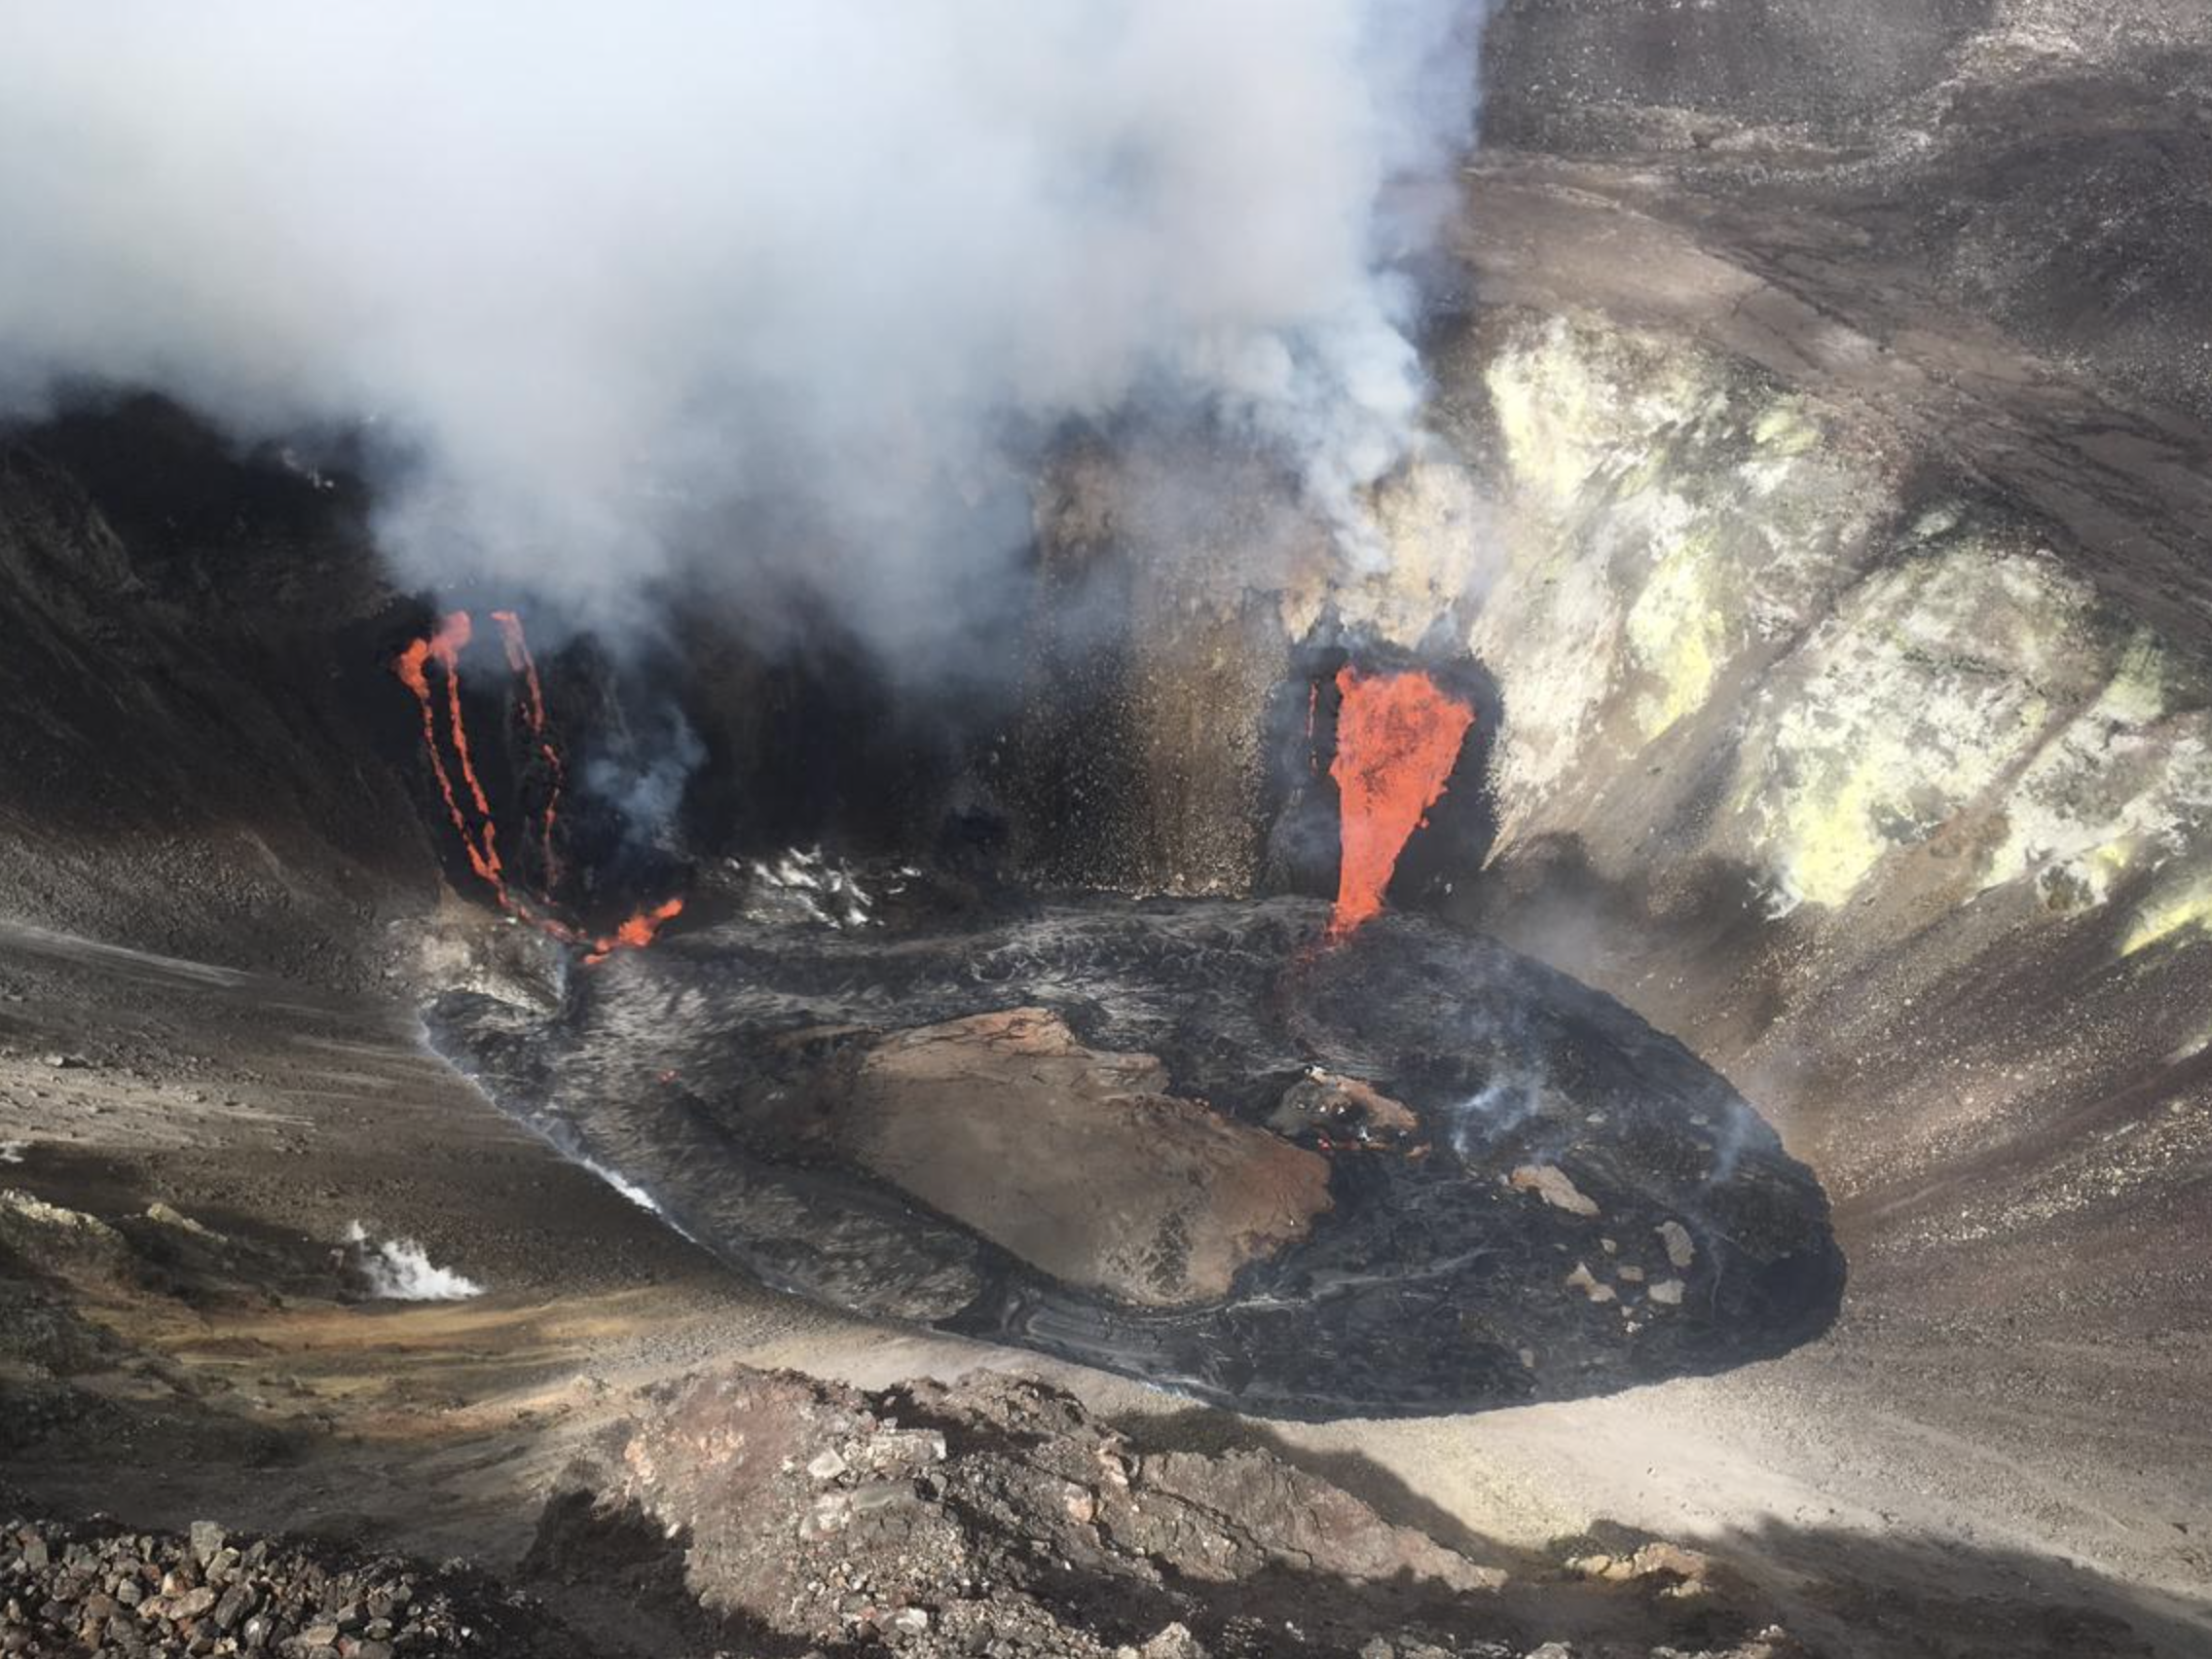 Kīlauea Eruption Poses Air Quality Hazard With Increased Vog and SO2 Levels